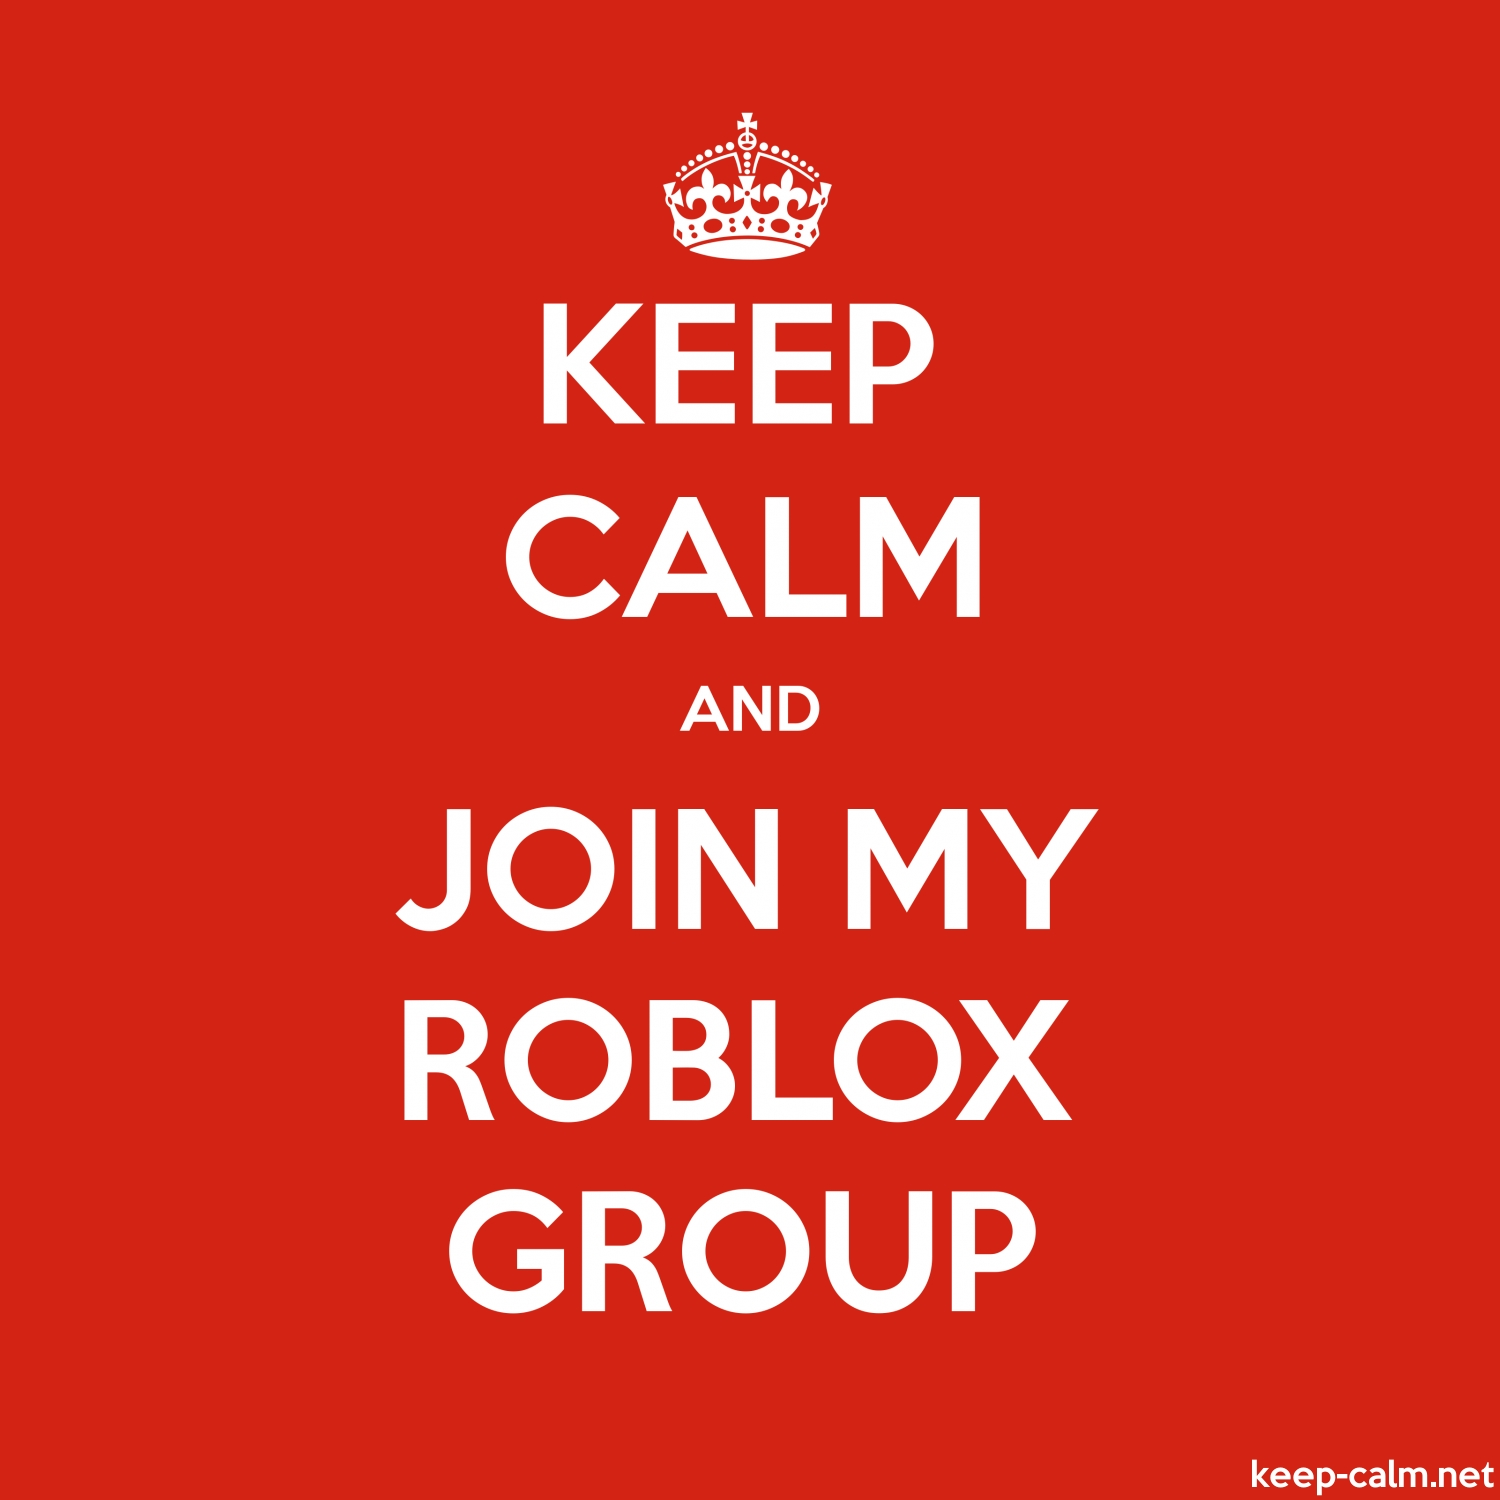 Roblox Adopt And Raise Groups That Give U Free Robux - Keep Calm And Join My Roblox Group Keep Calm Net